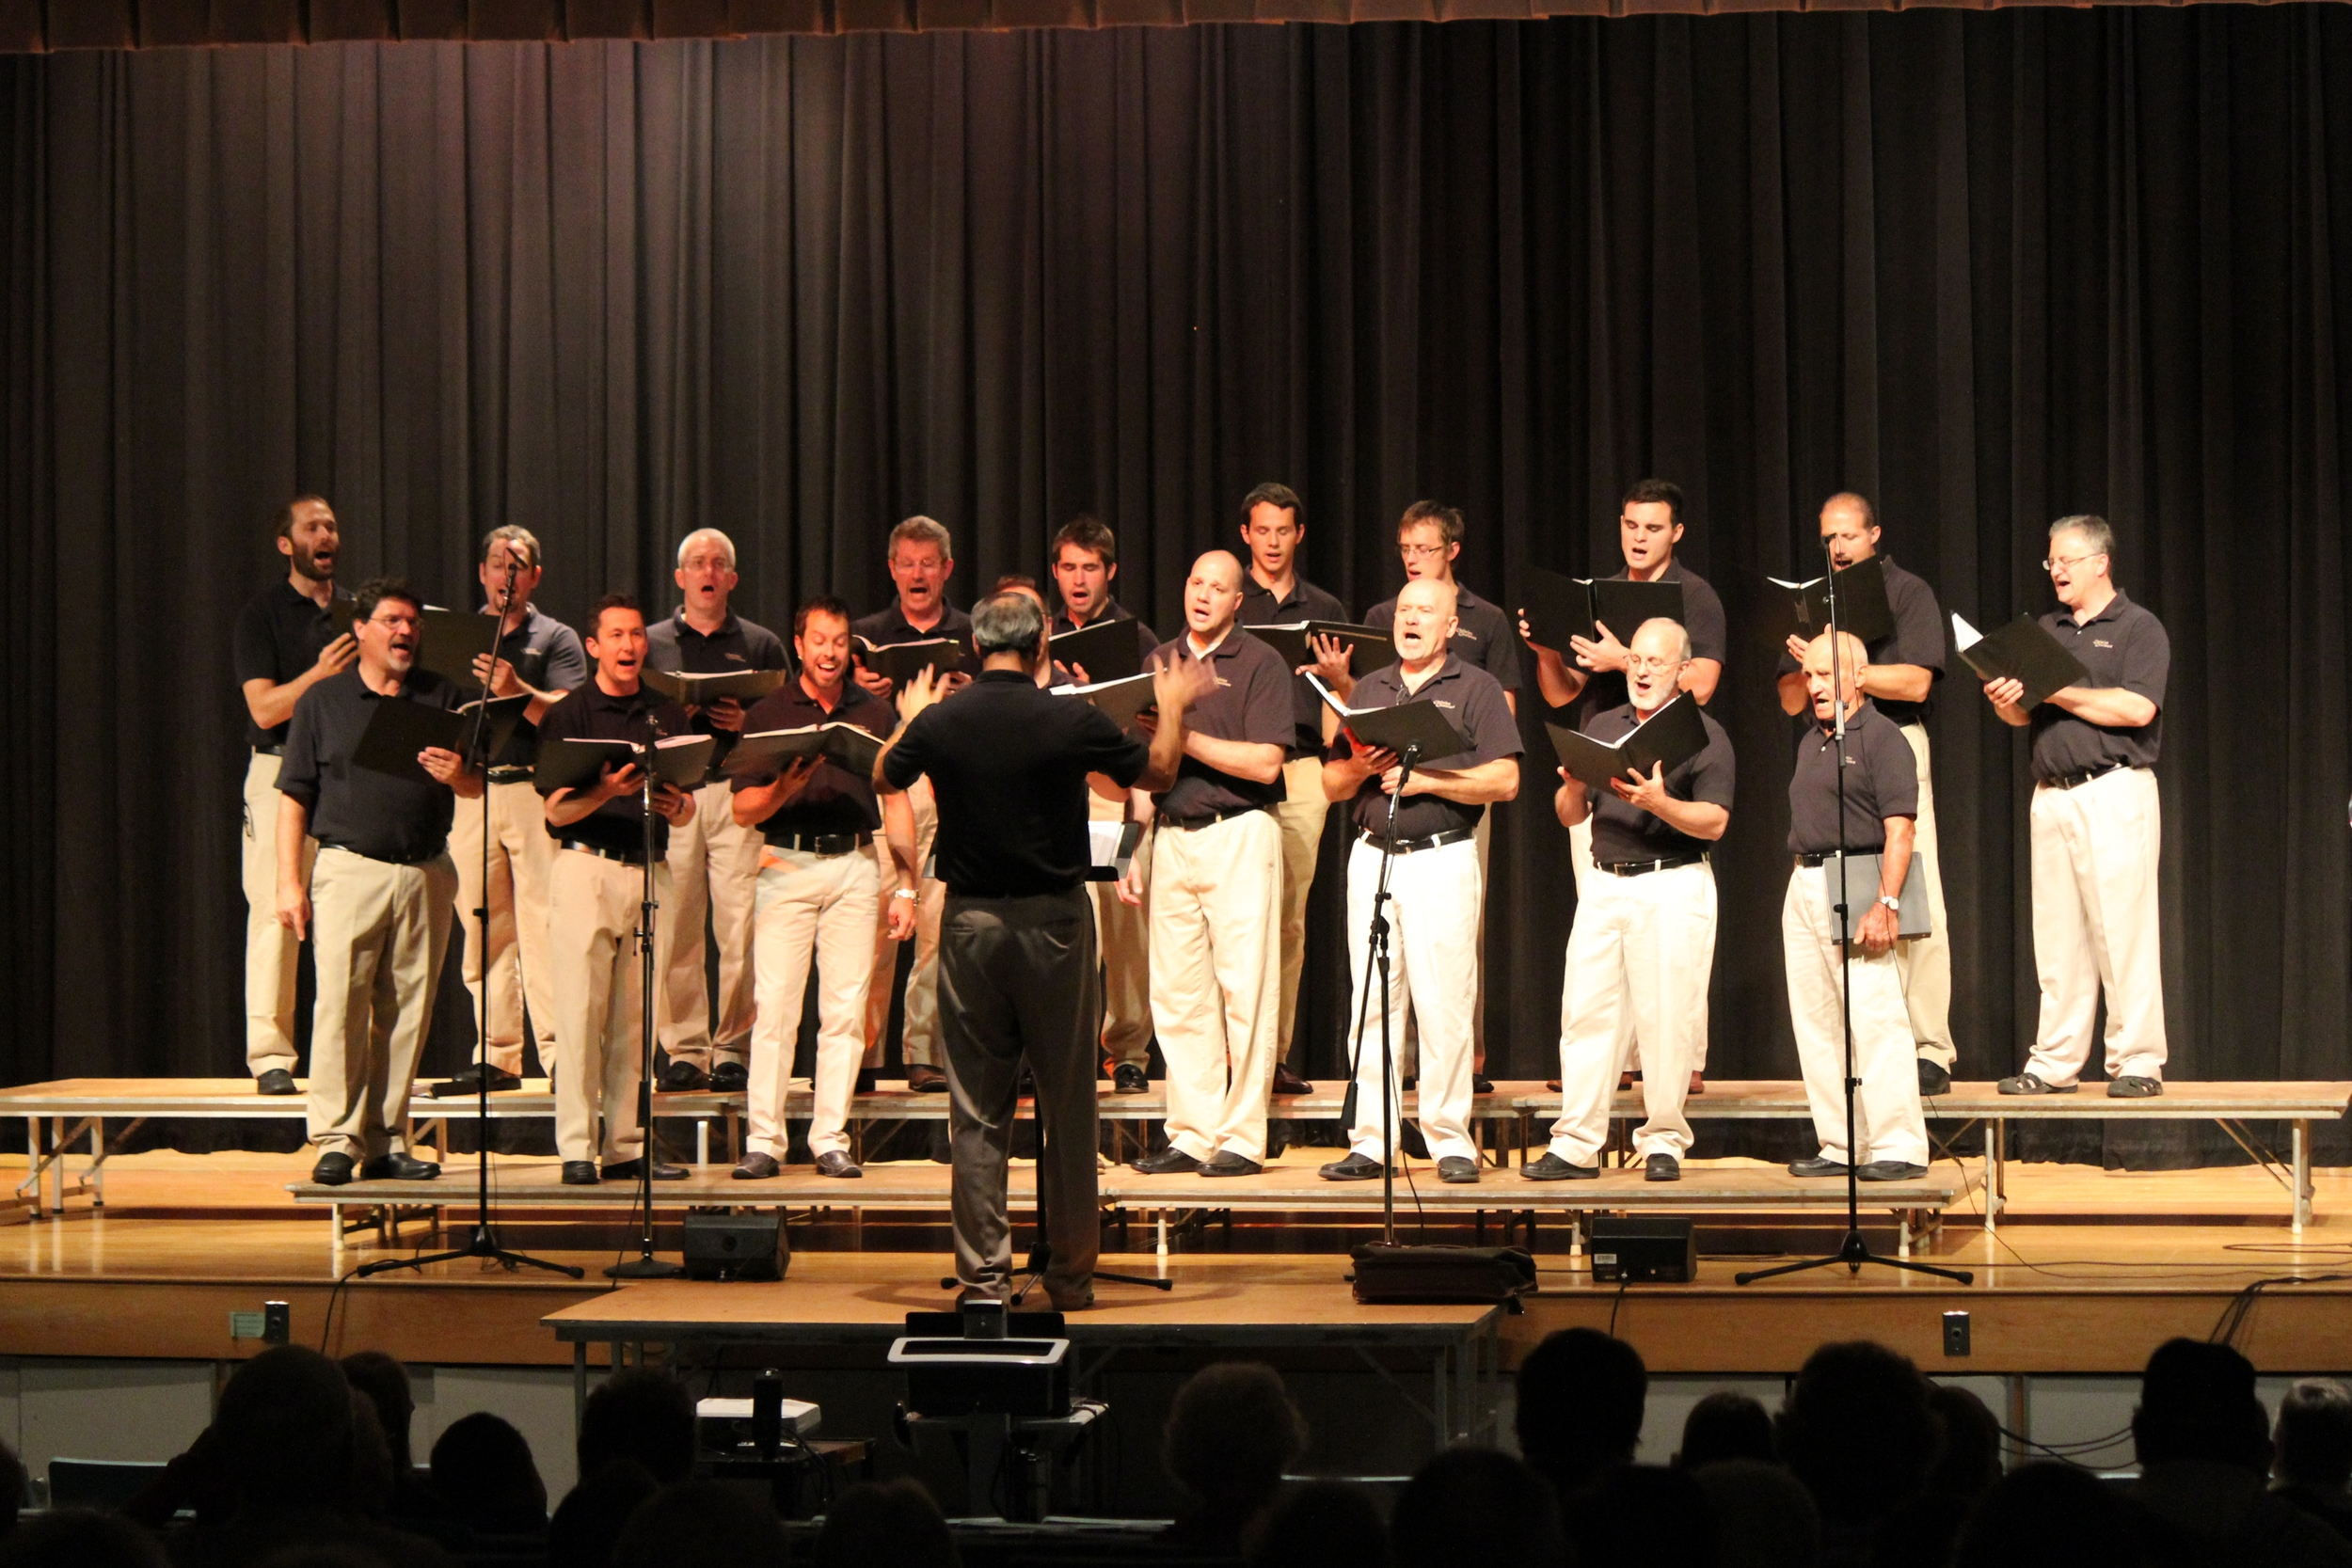 The Christian Choristers sang at the Union City High School on Saturday, September 13, 2014.